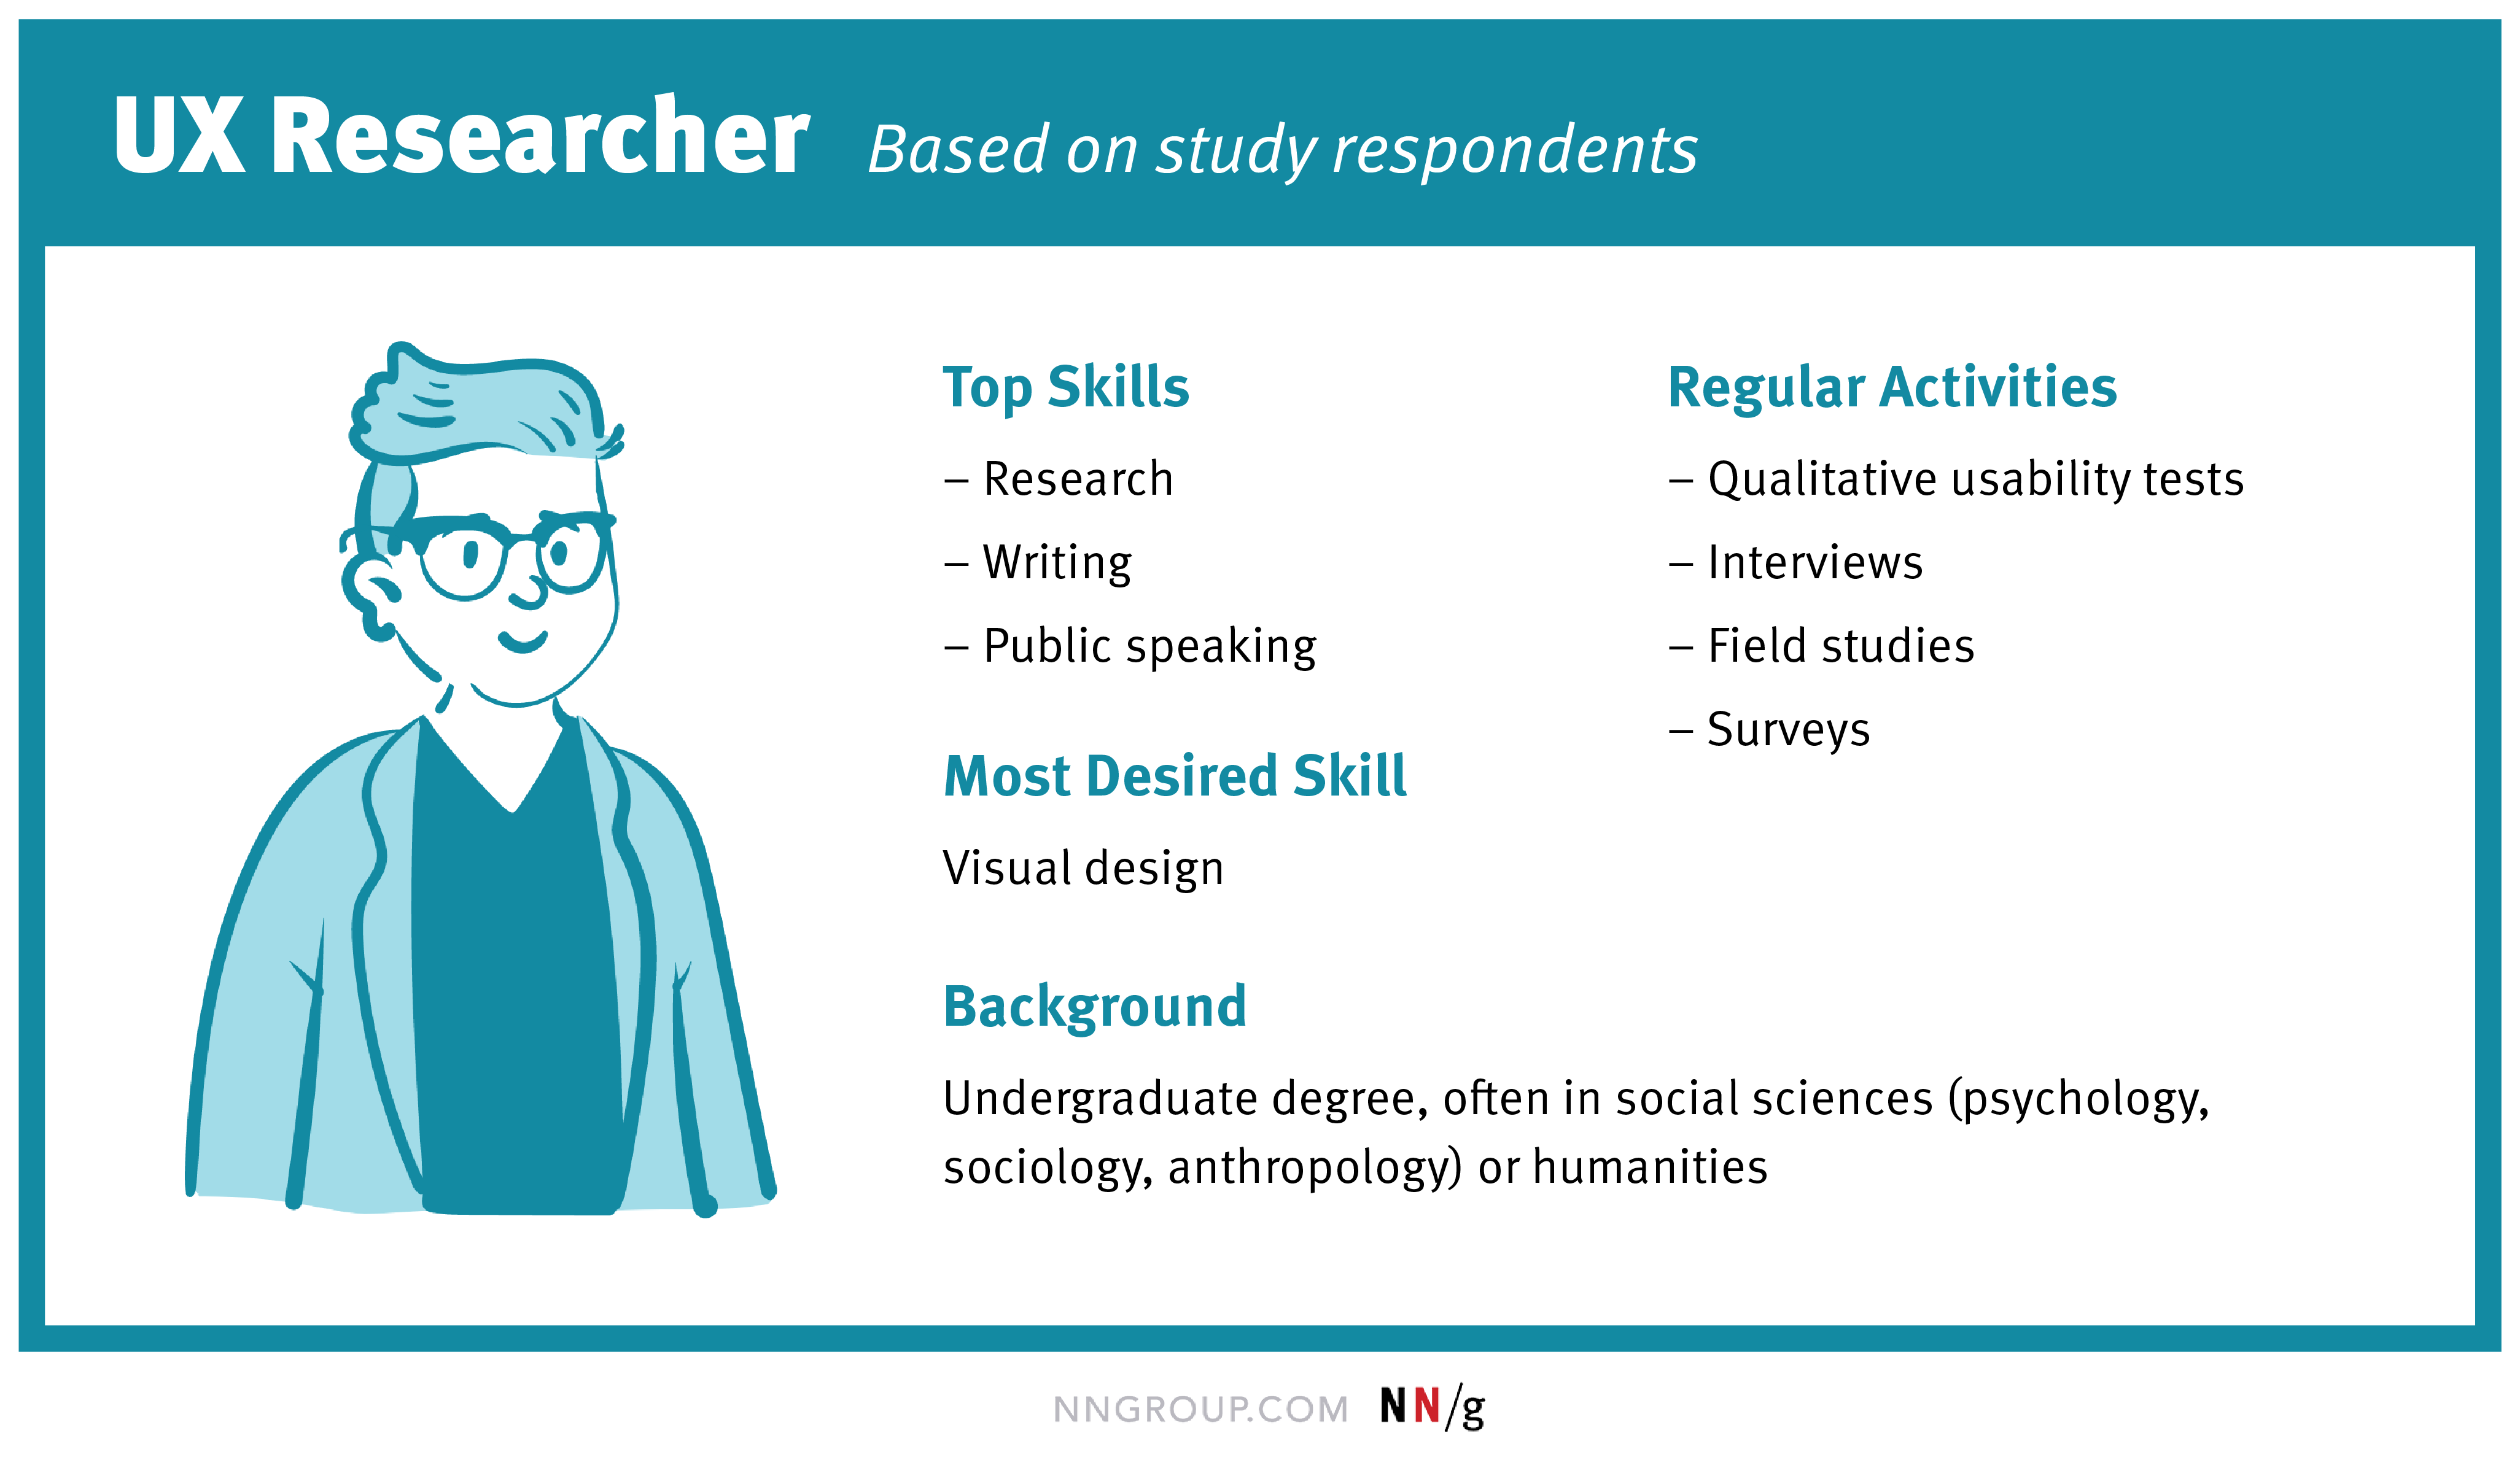 Image of a UX researcher, based on study respondents. Top skills: research, writing, and public speaking; Most desired skill: visual design; Regular activities: qualitative usability tests, interviews, field studies, and surveys; Background: undergraduate degree, often in social sciences (psychology, sociology, anthropology) or humanities